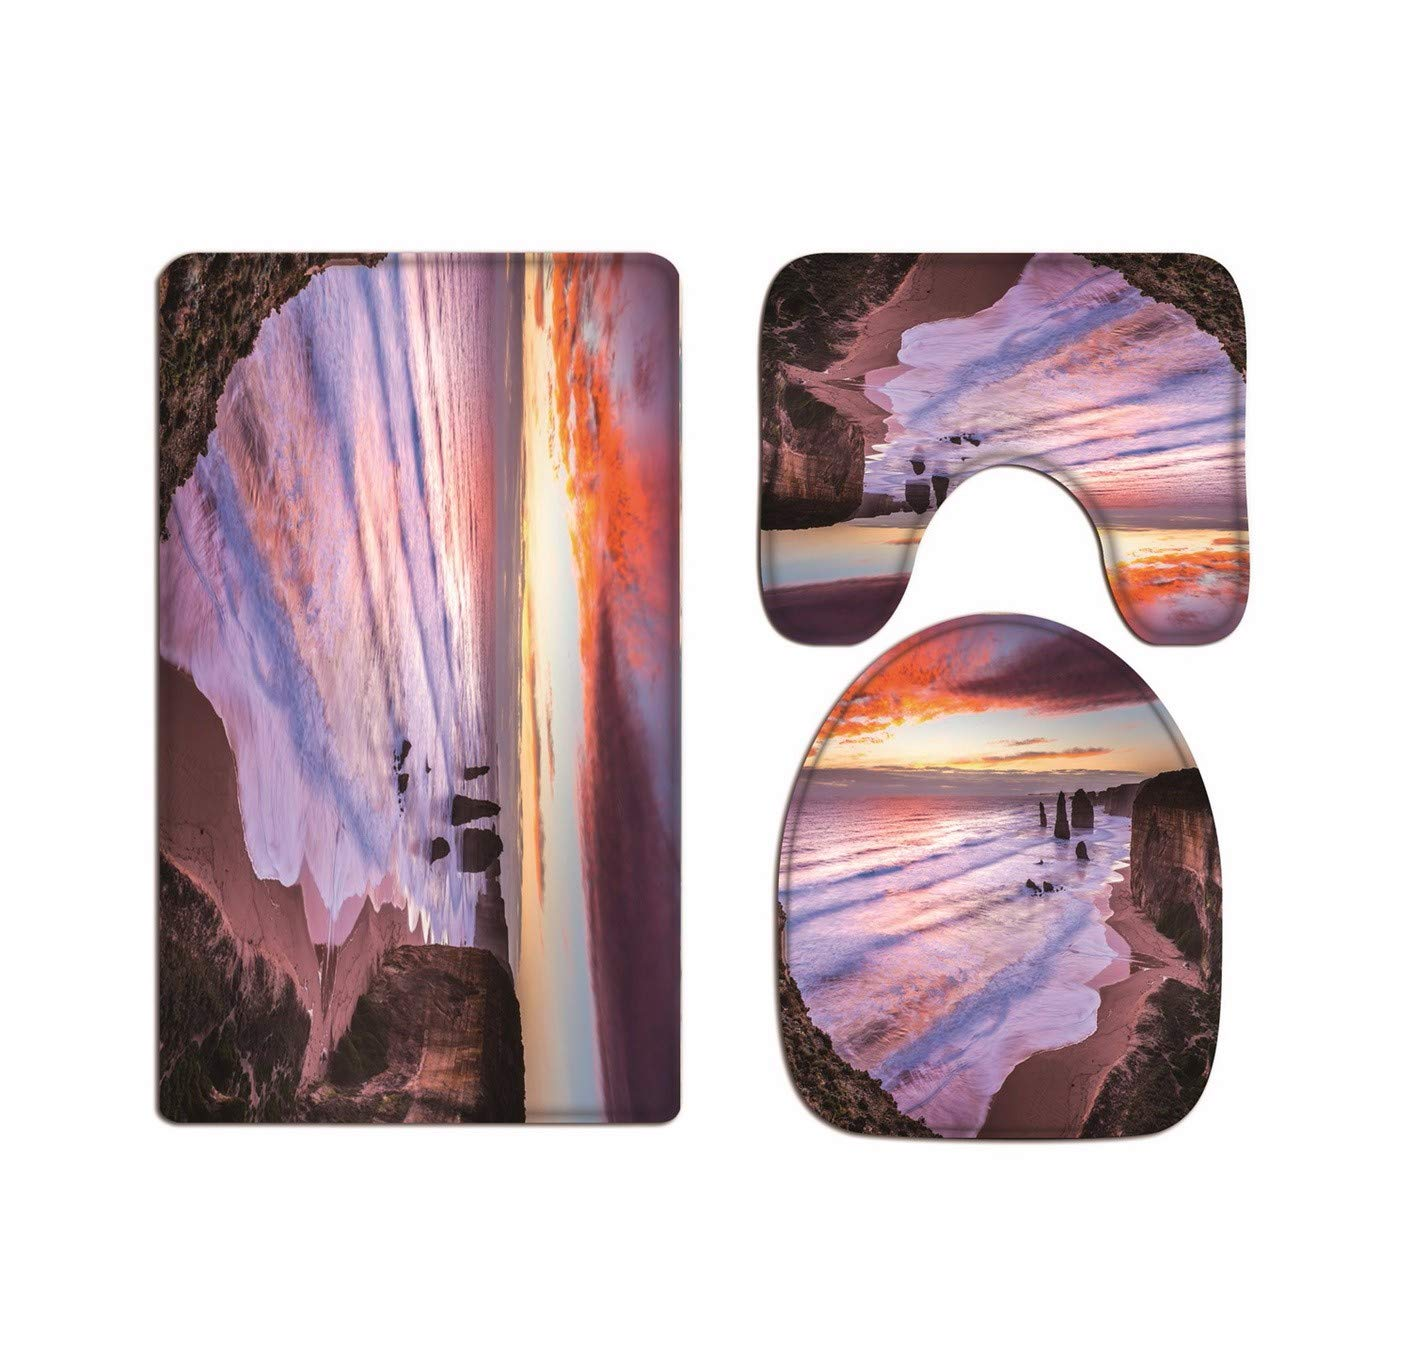 A.Monamour Big Storm Blue Sea Ocean Wave Nature Scenery Picture Art Print Soft Flannel Cloth Washable Toilet Seat Covers Toilet Lid Covers Cushions Pads Skidproof Bath Mat Rug For Toilet Accessories